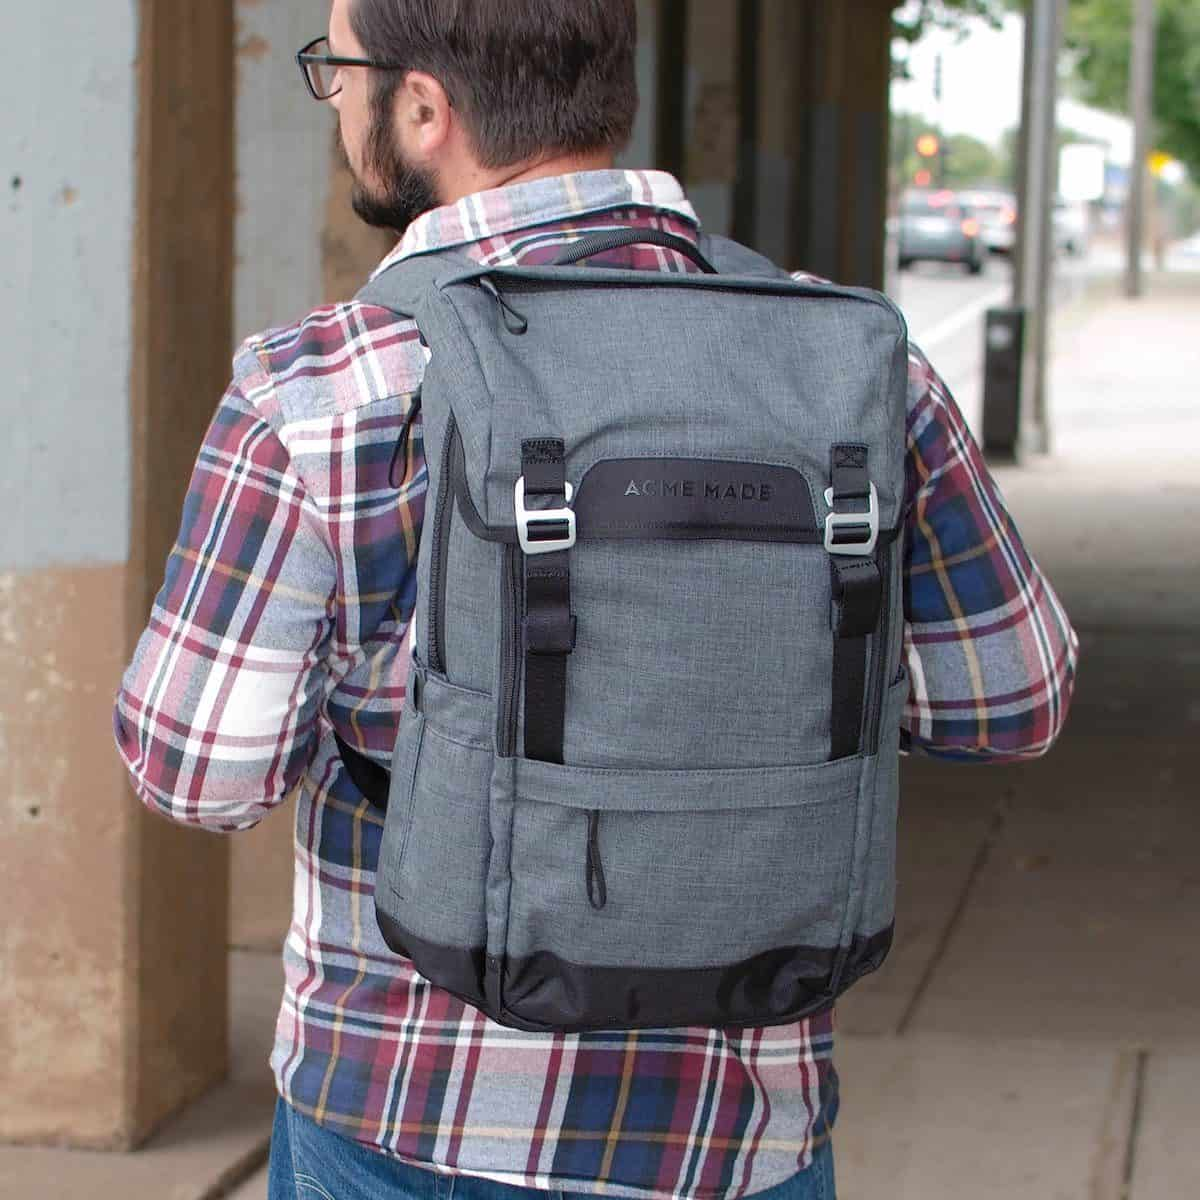 dailymom parent portal acme backpack 4 daily mom parent portal gifts for men